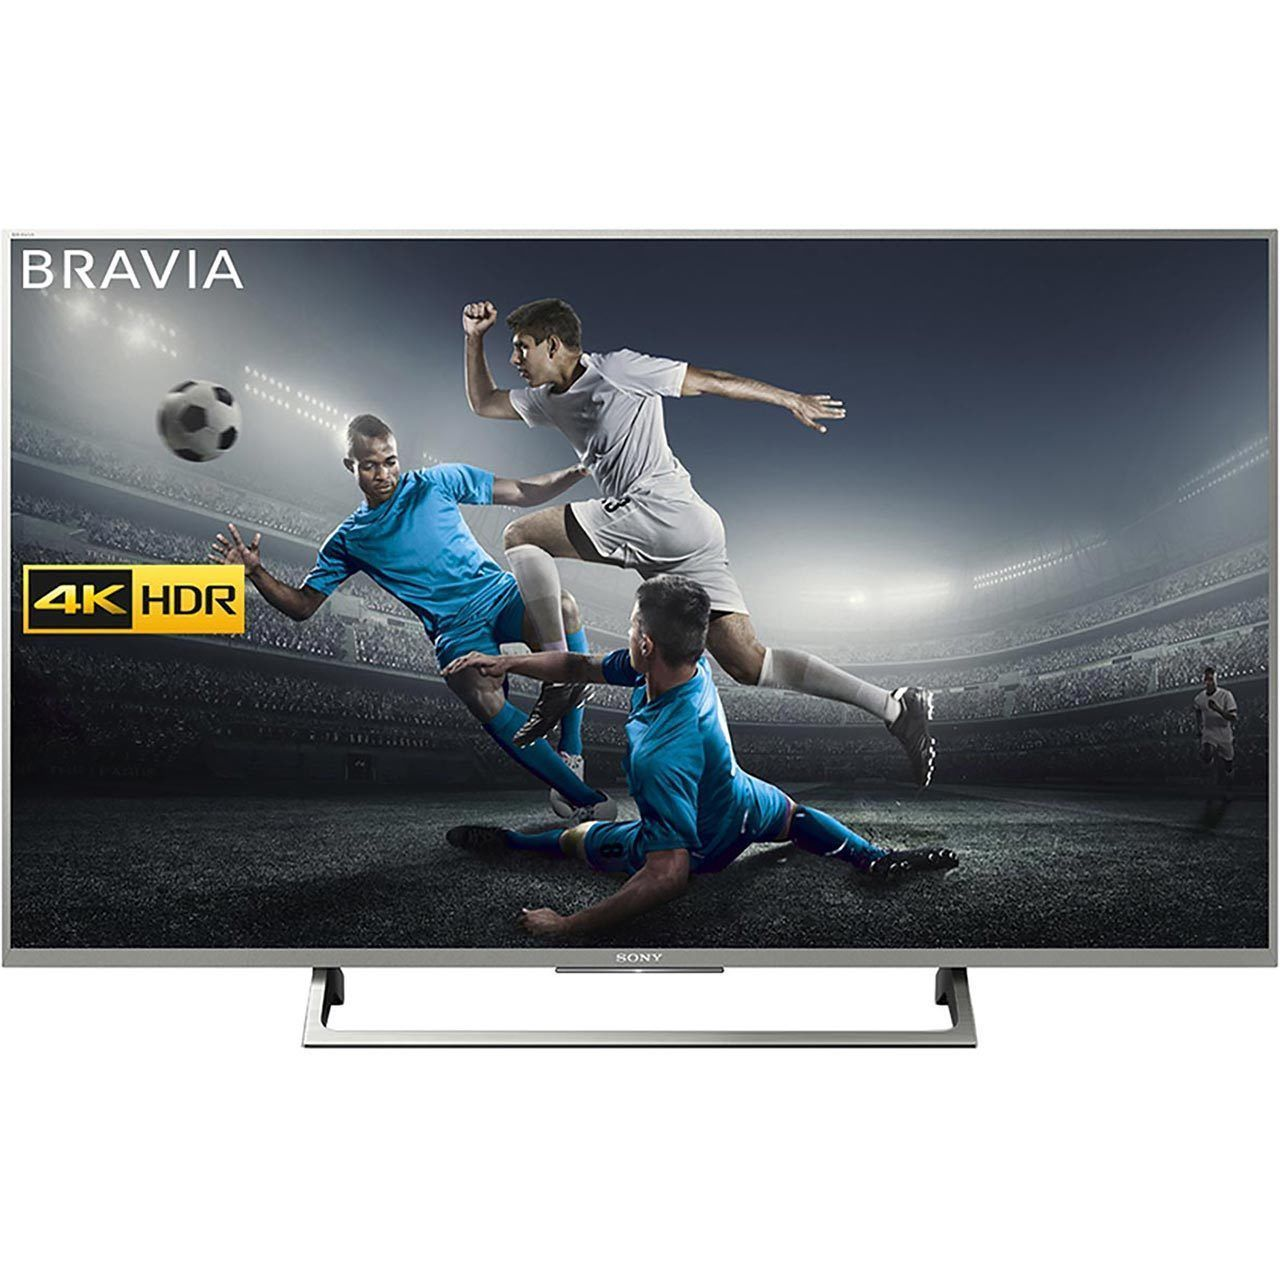 Sony KD49XE8077SU 49 Inch Smart LCD TV 4K Ultra HD Certified 3 HDMI New 1